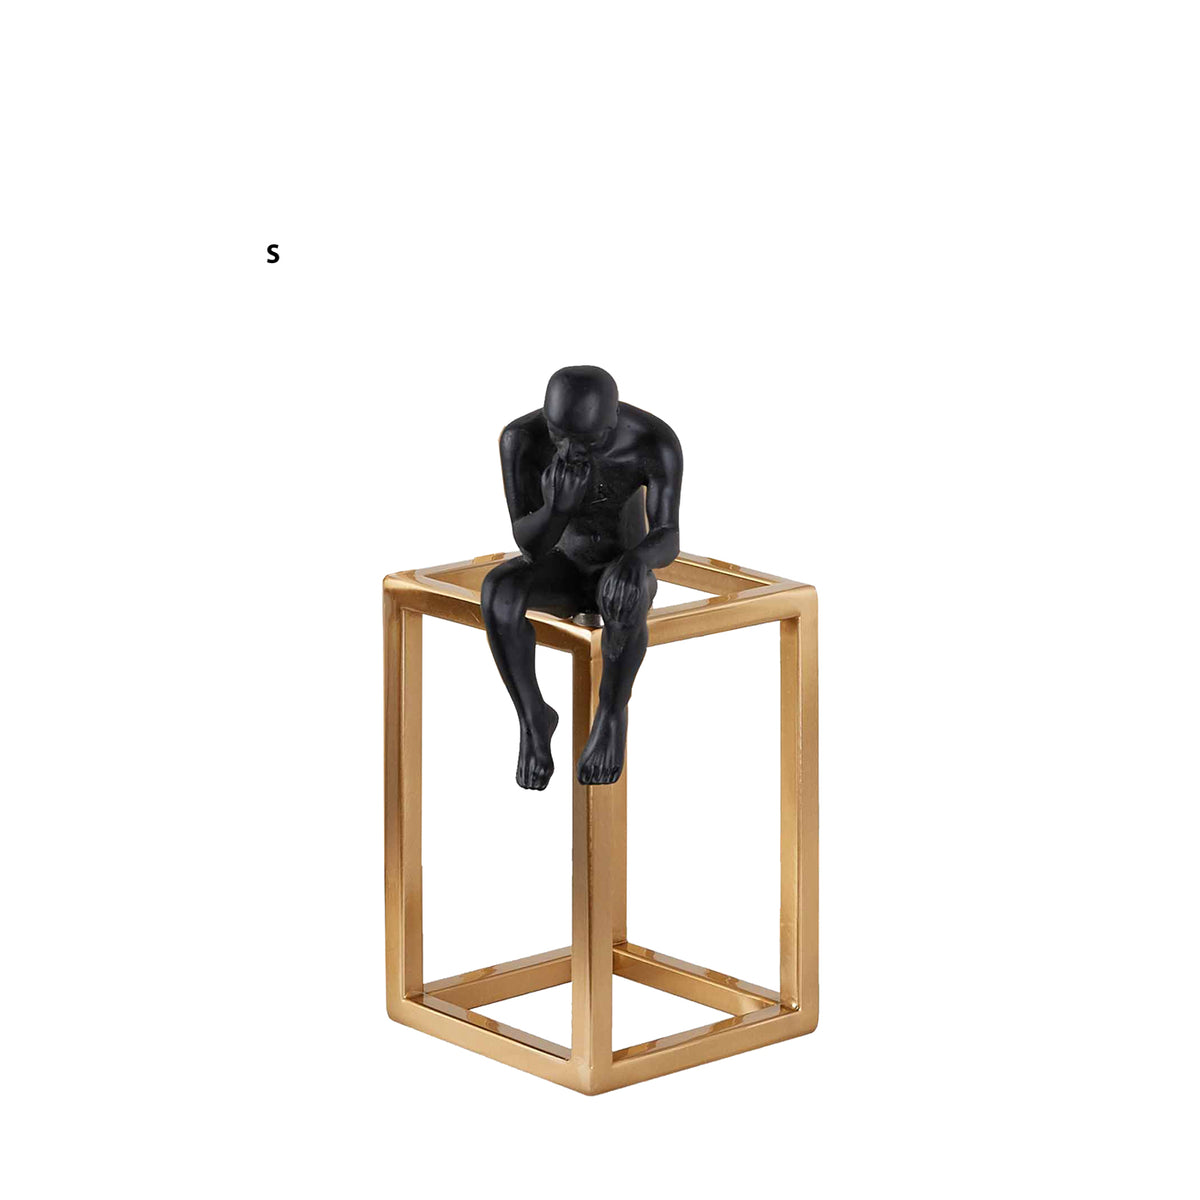 Thinker on Stand - objects of interest